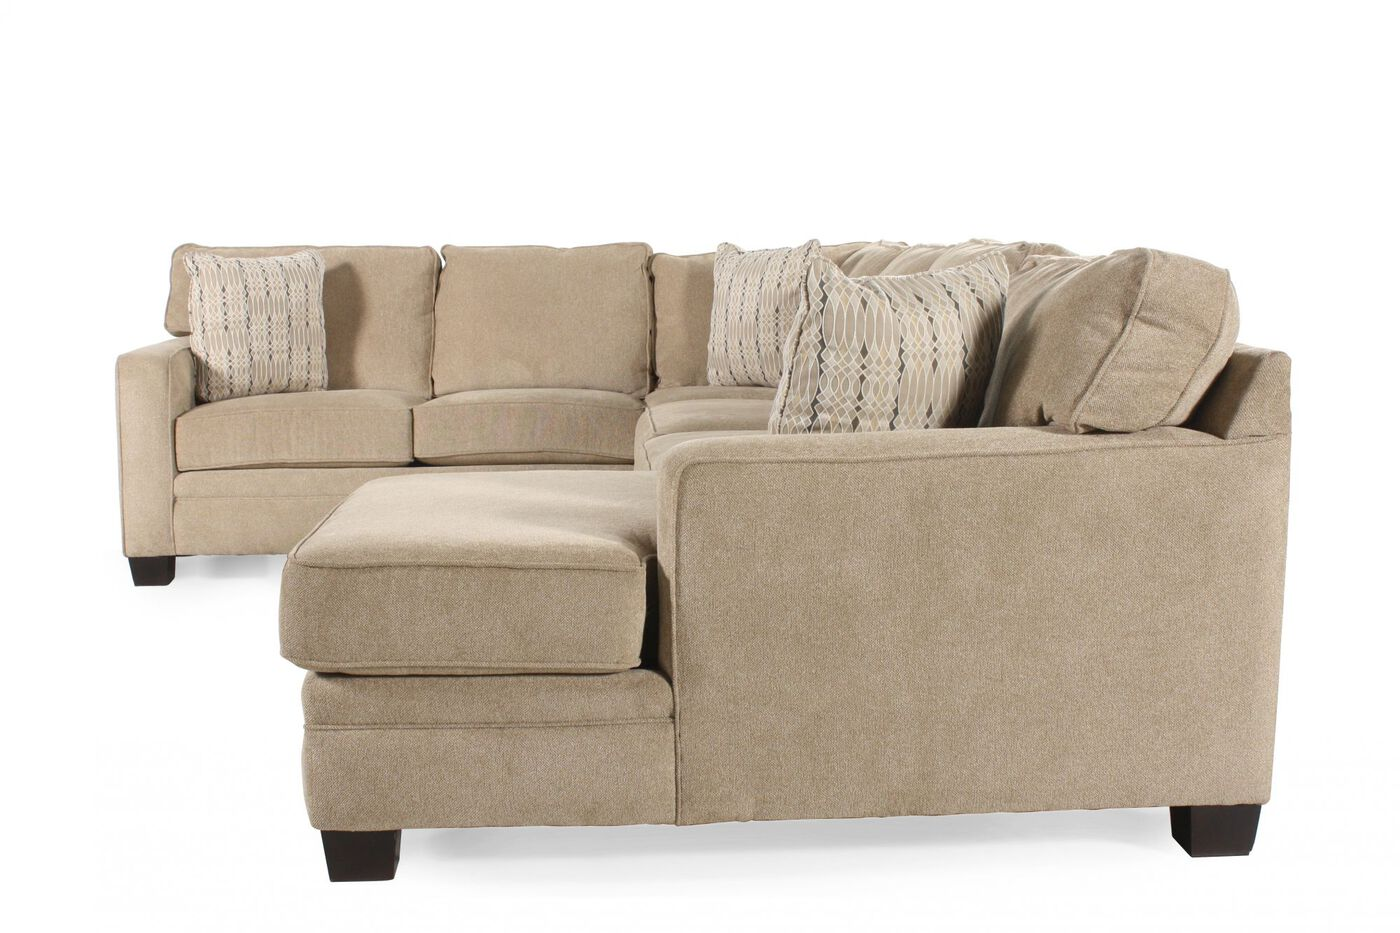 Broyhill choices sectional mathis brothers furniture for Mathis brothers living room furniture sectional sofas